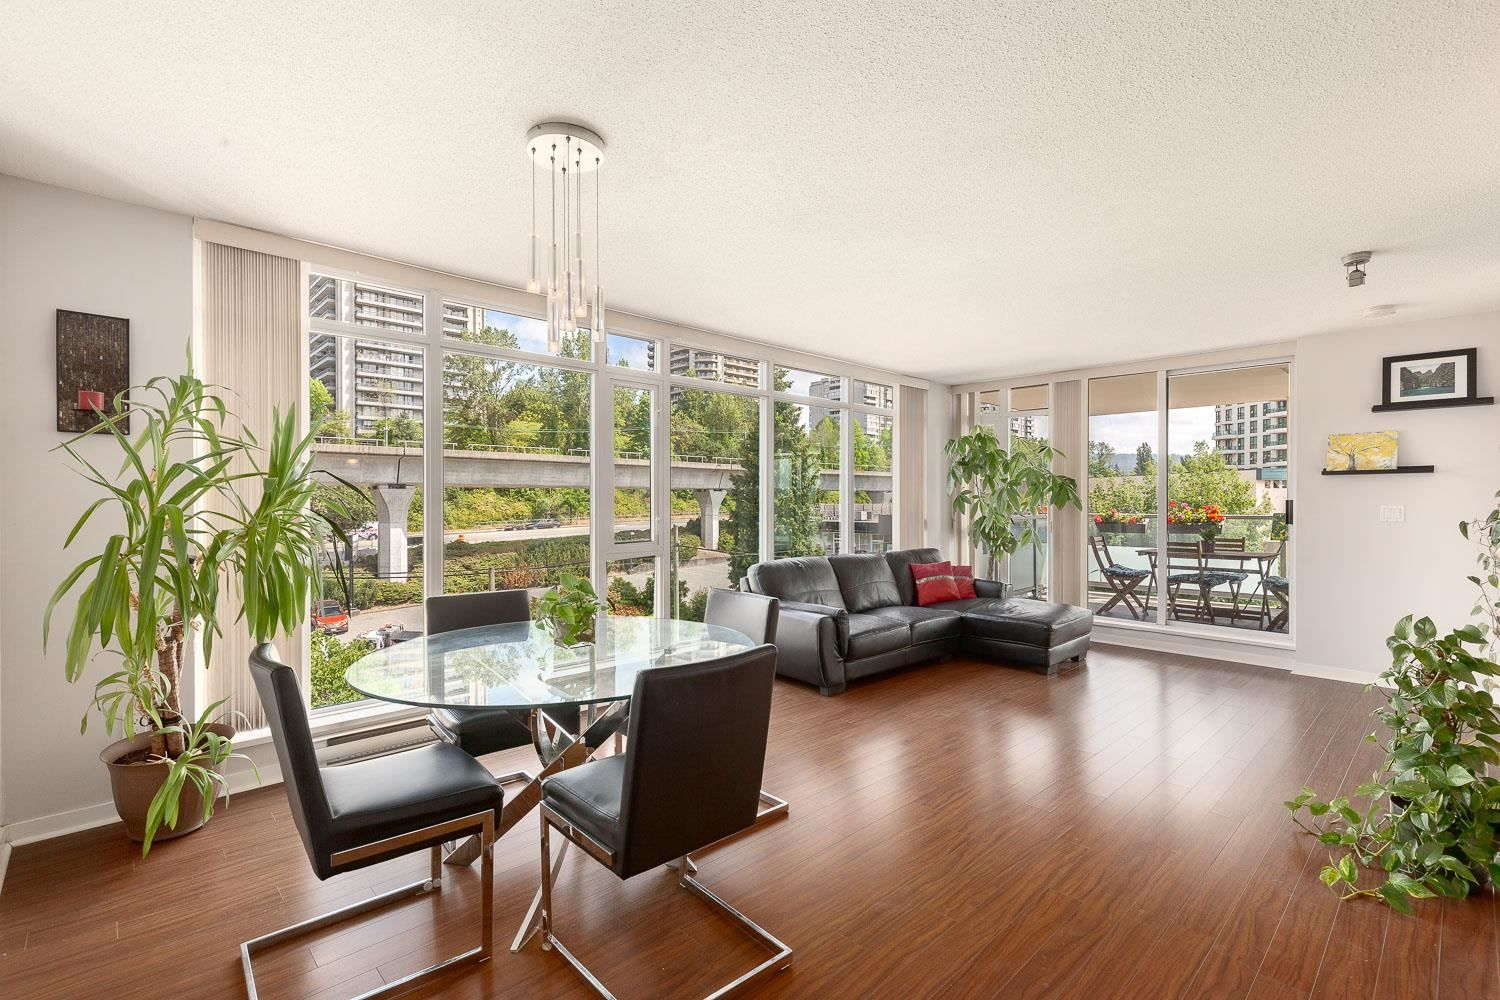 Main Photo: 503 2133 DOUGLAS Road in Burnaby: Brentwood Park Condo for sale (Burnaby North)  : MLS®# R2603461